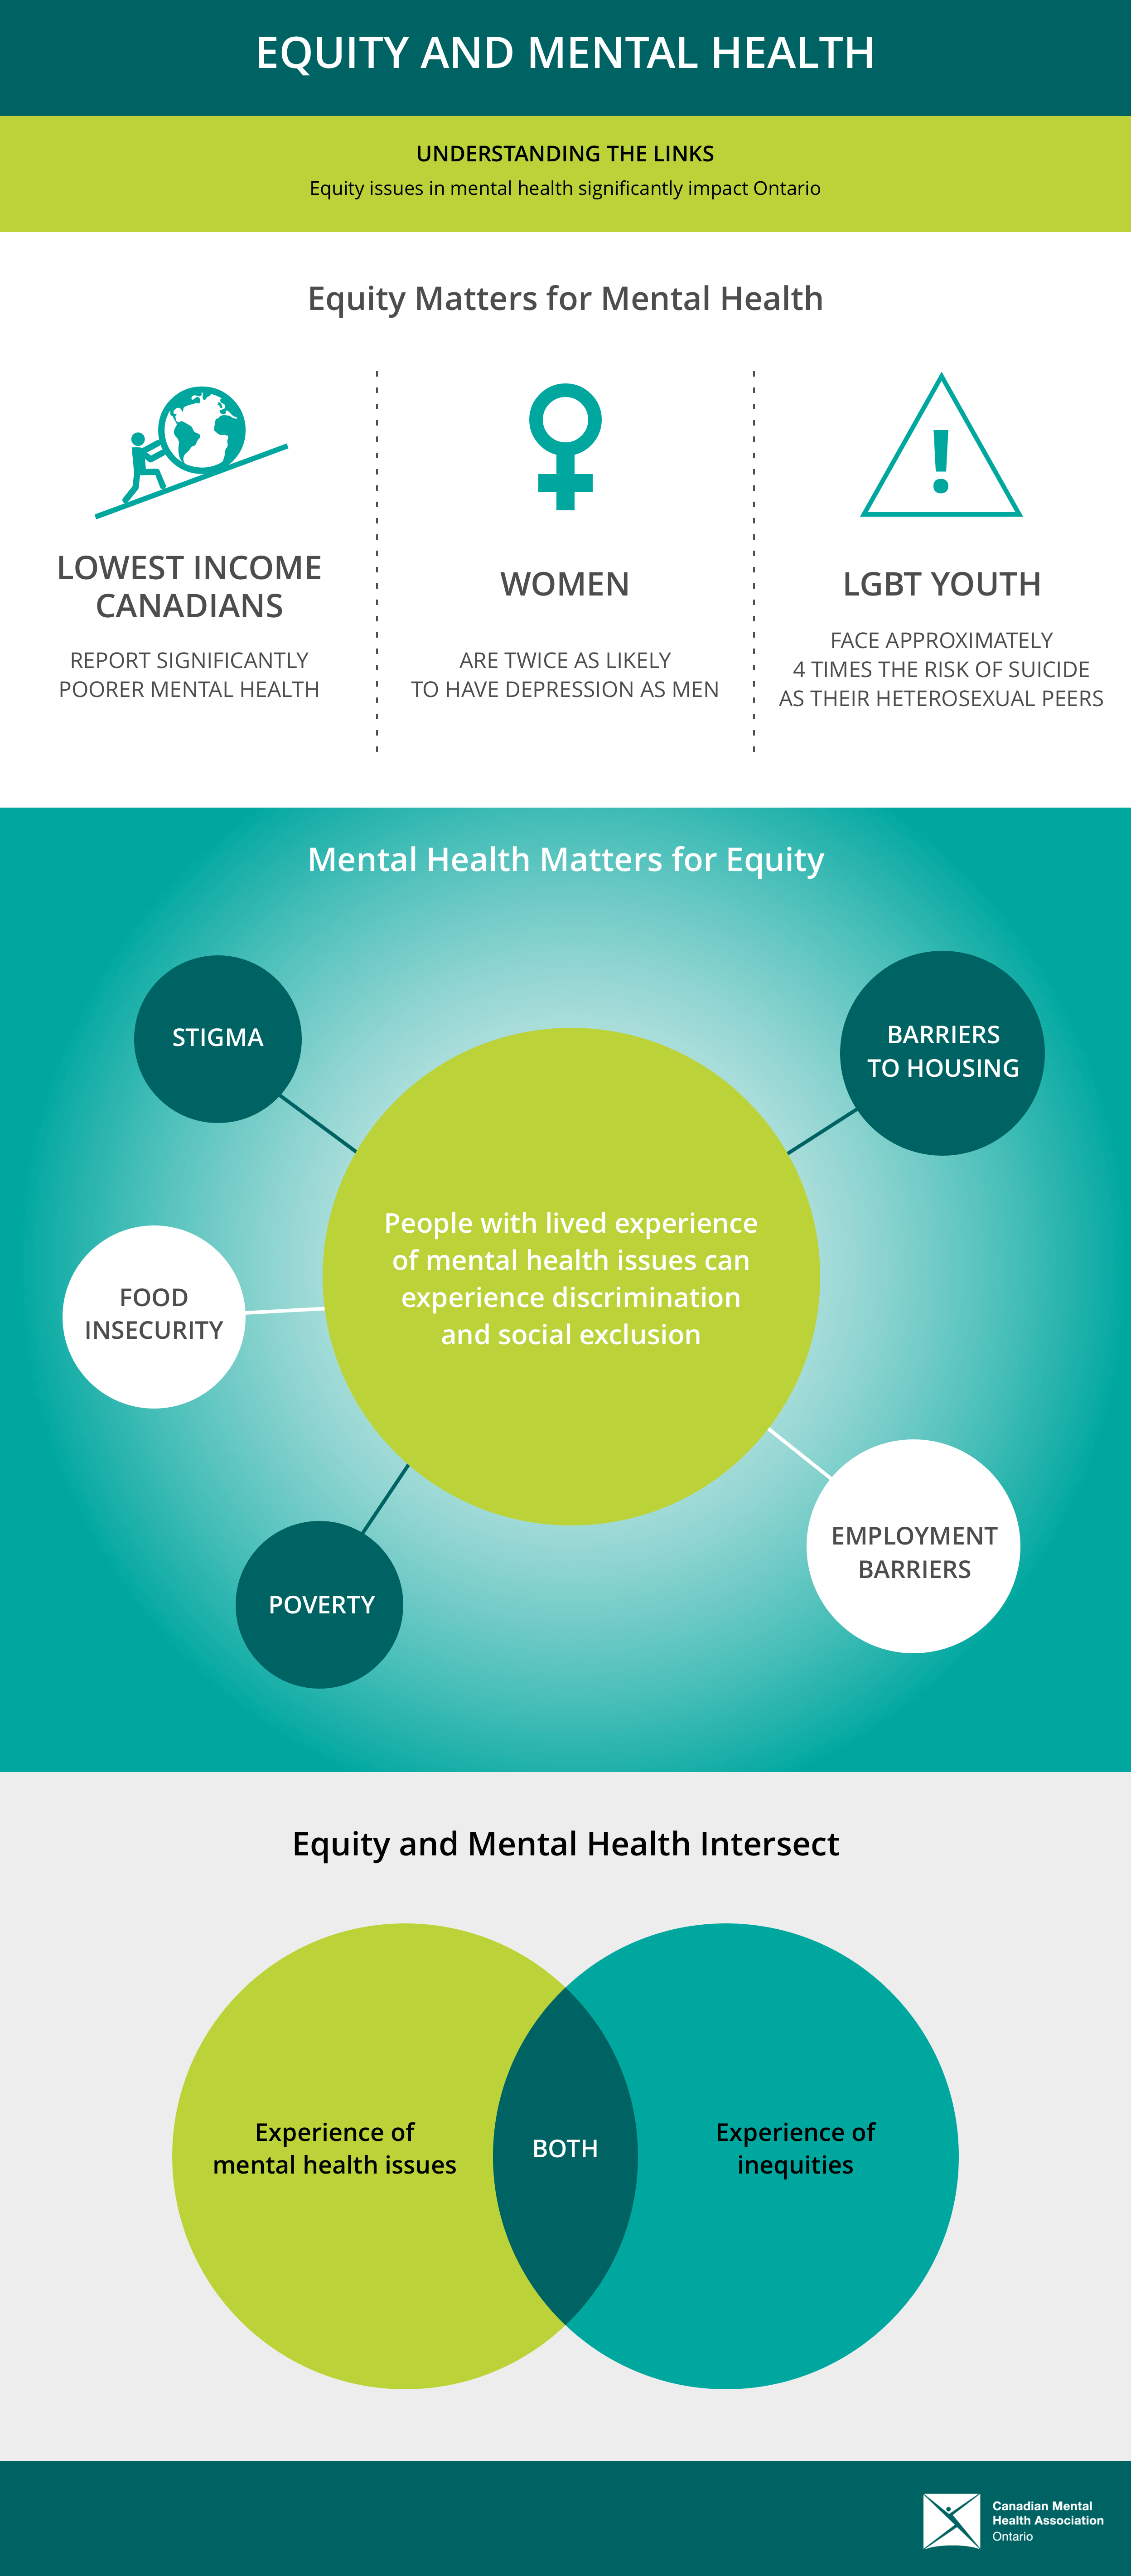 Equity Matters for Mental Health - Illustration